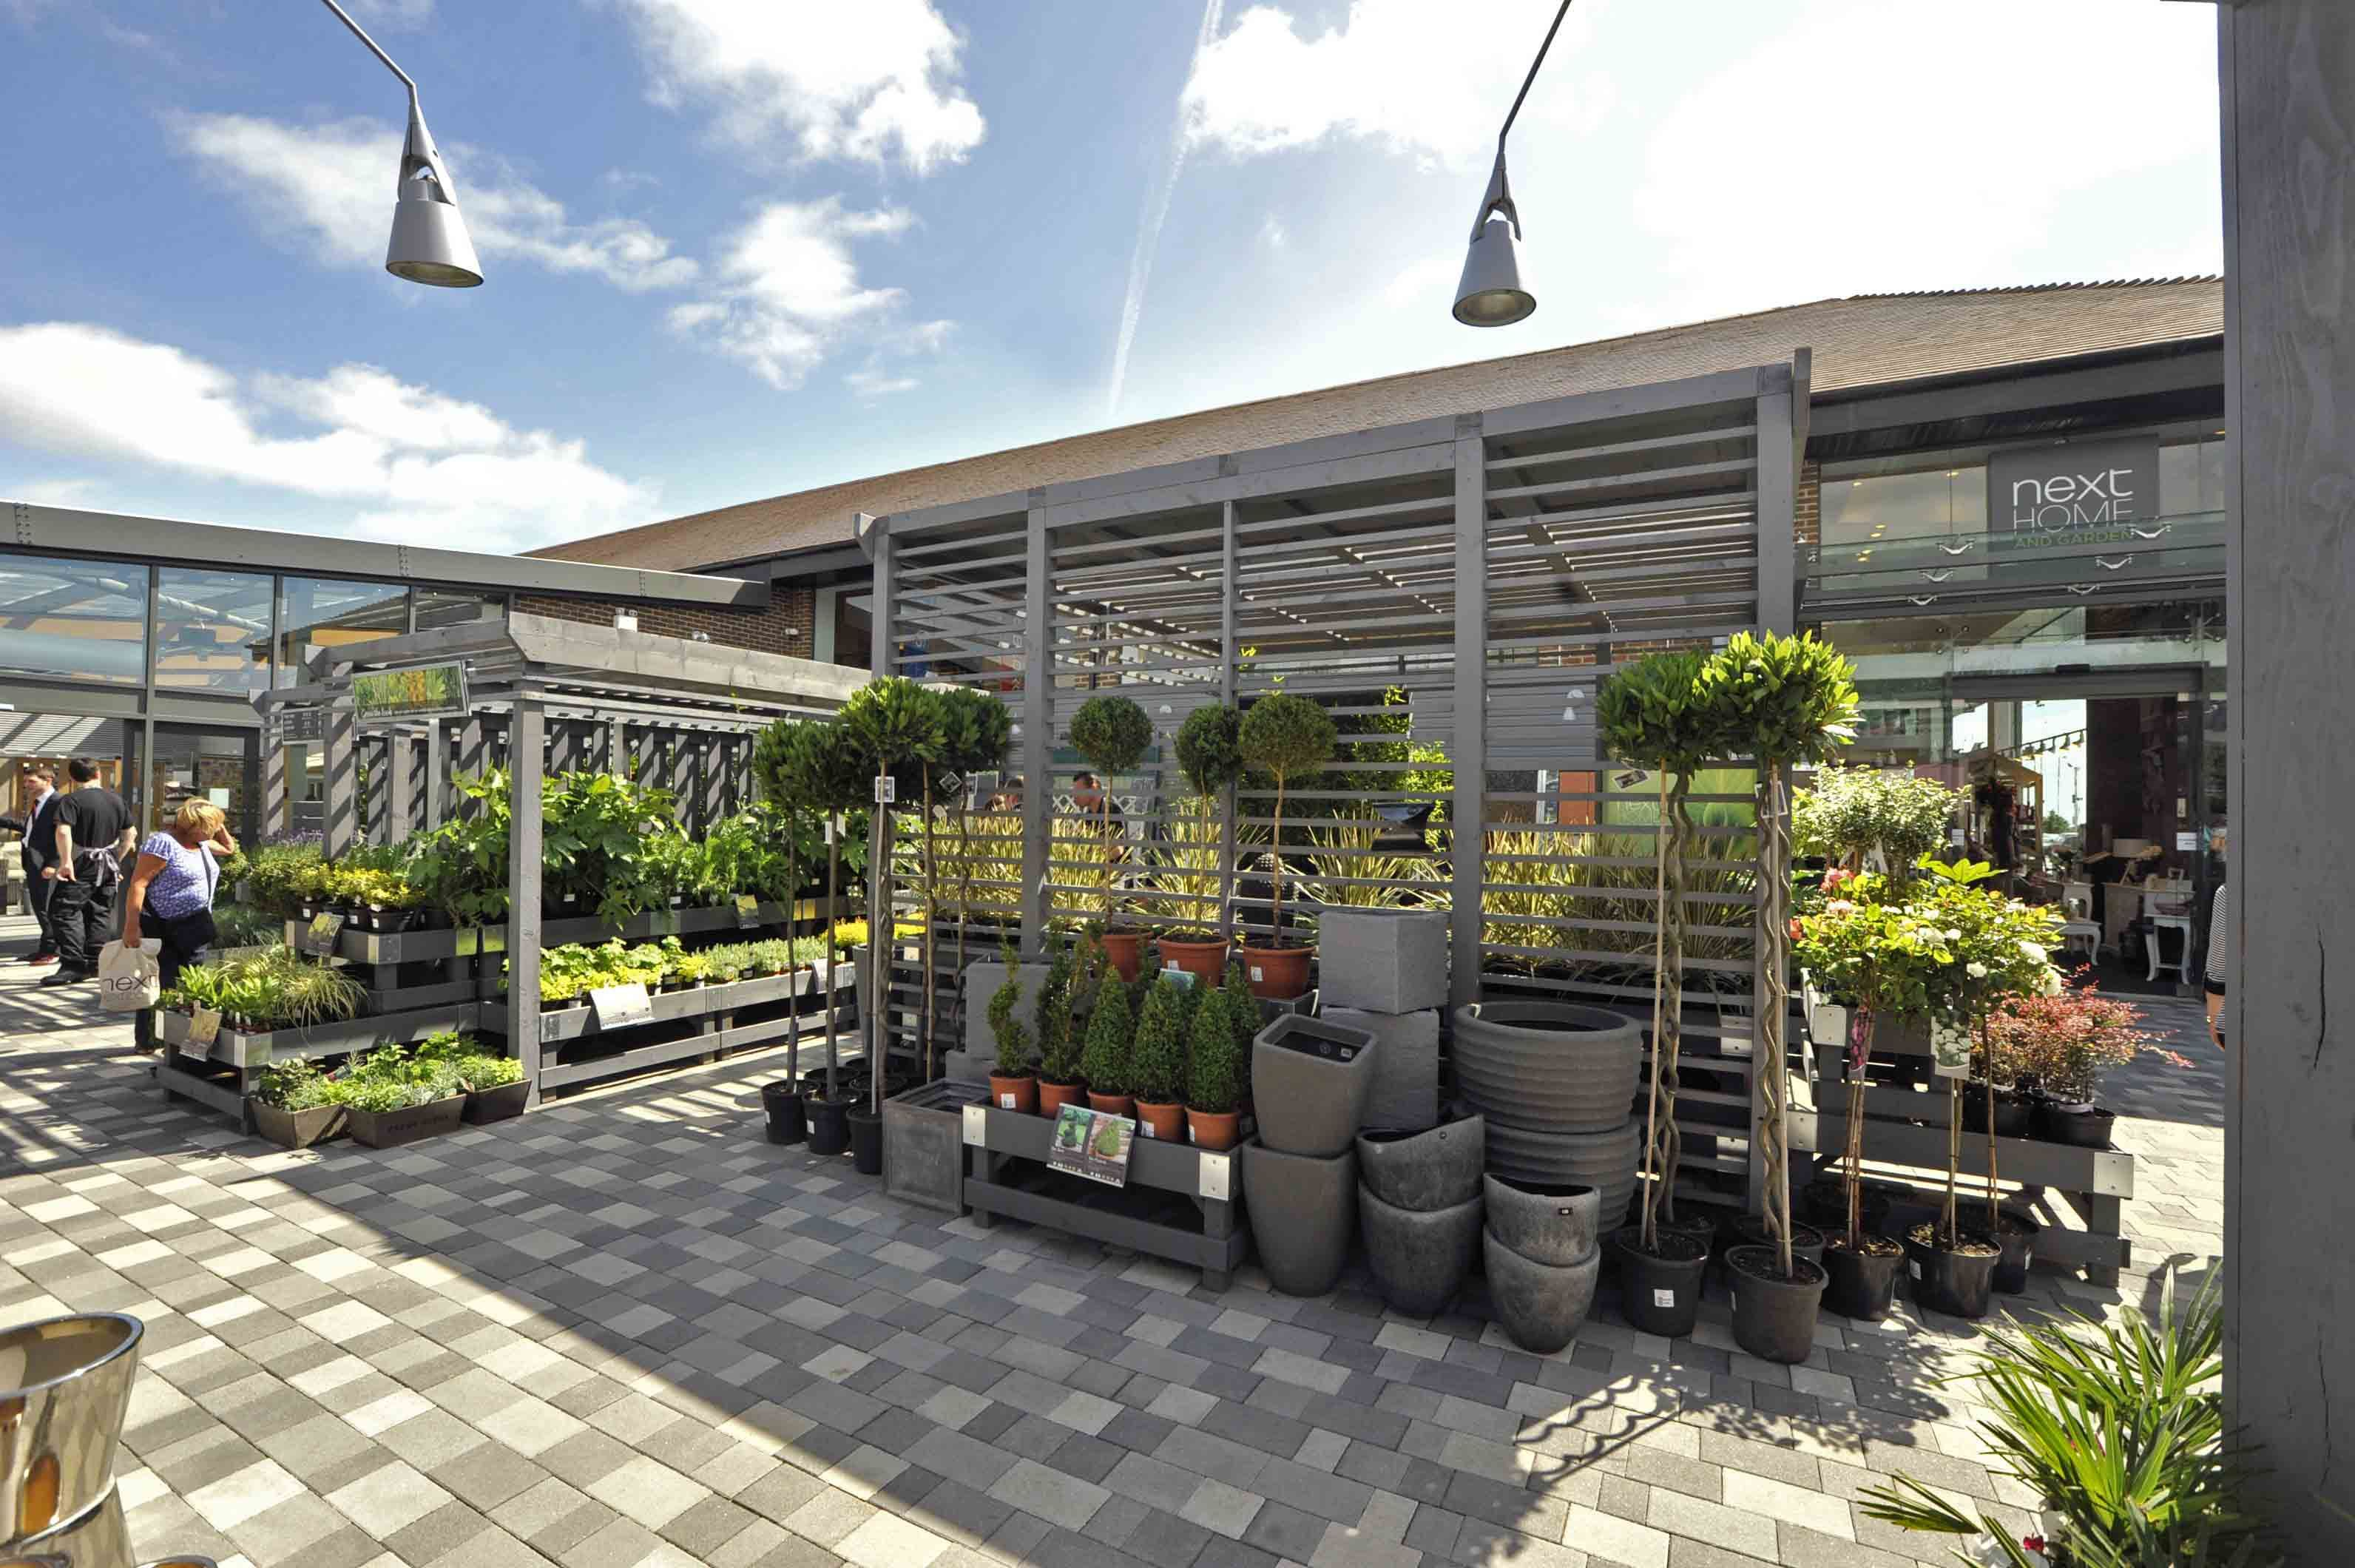 Superbe Fashion Chain Next Has Opened Its First UK Garden Centre. The High Street  Retailer Cut